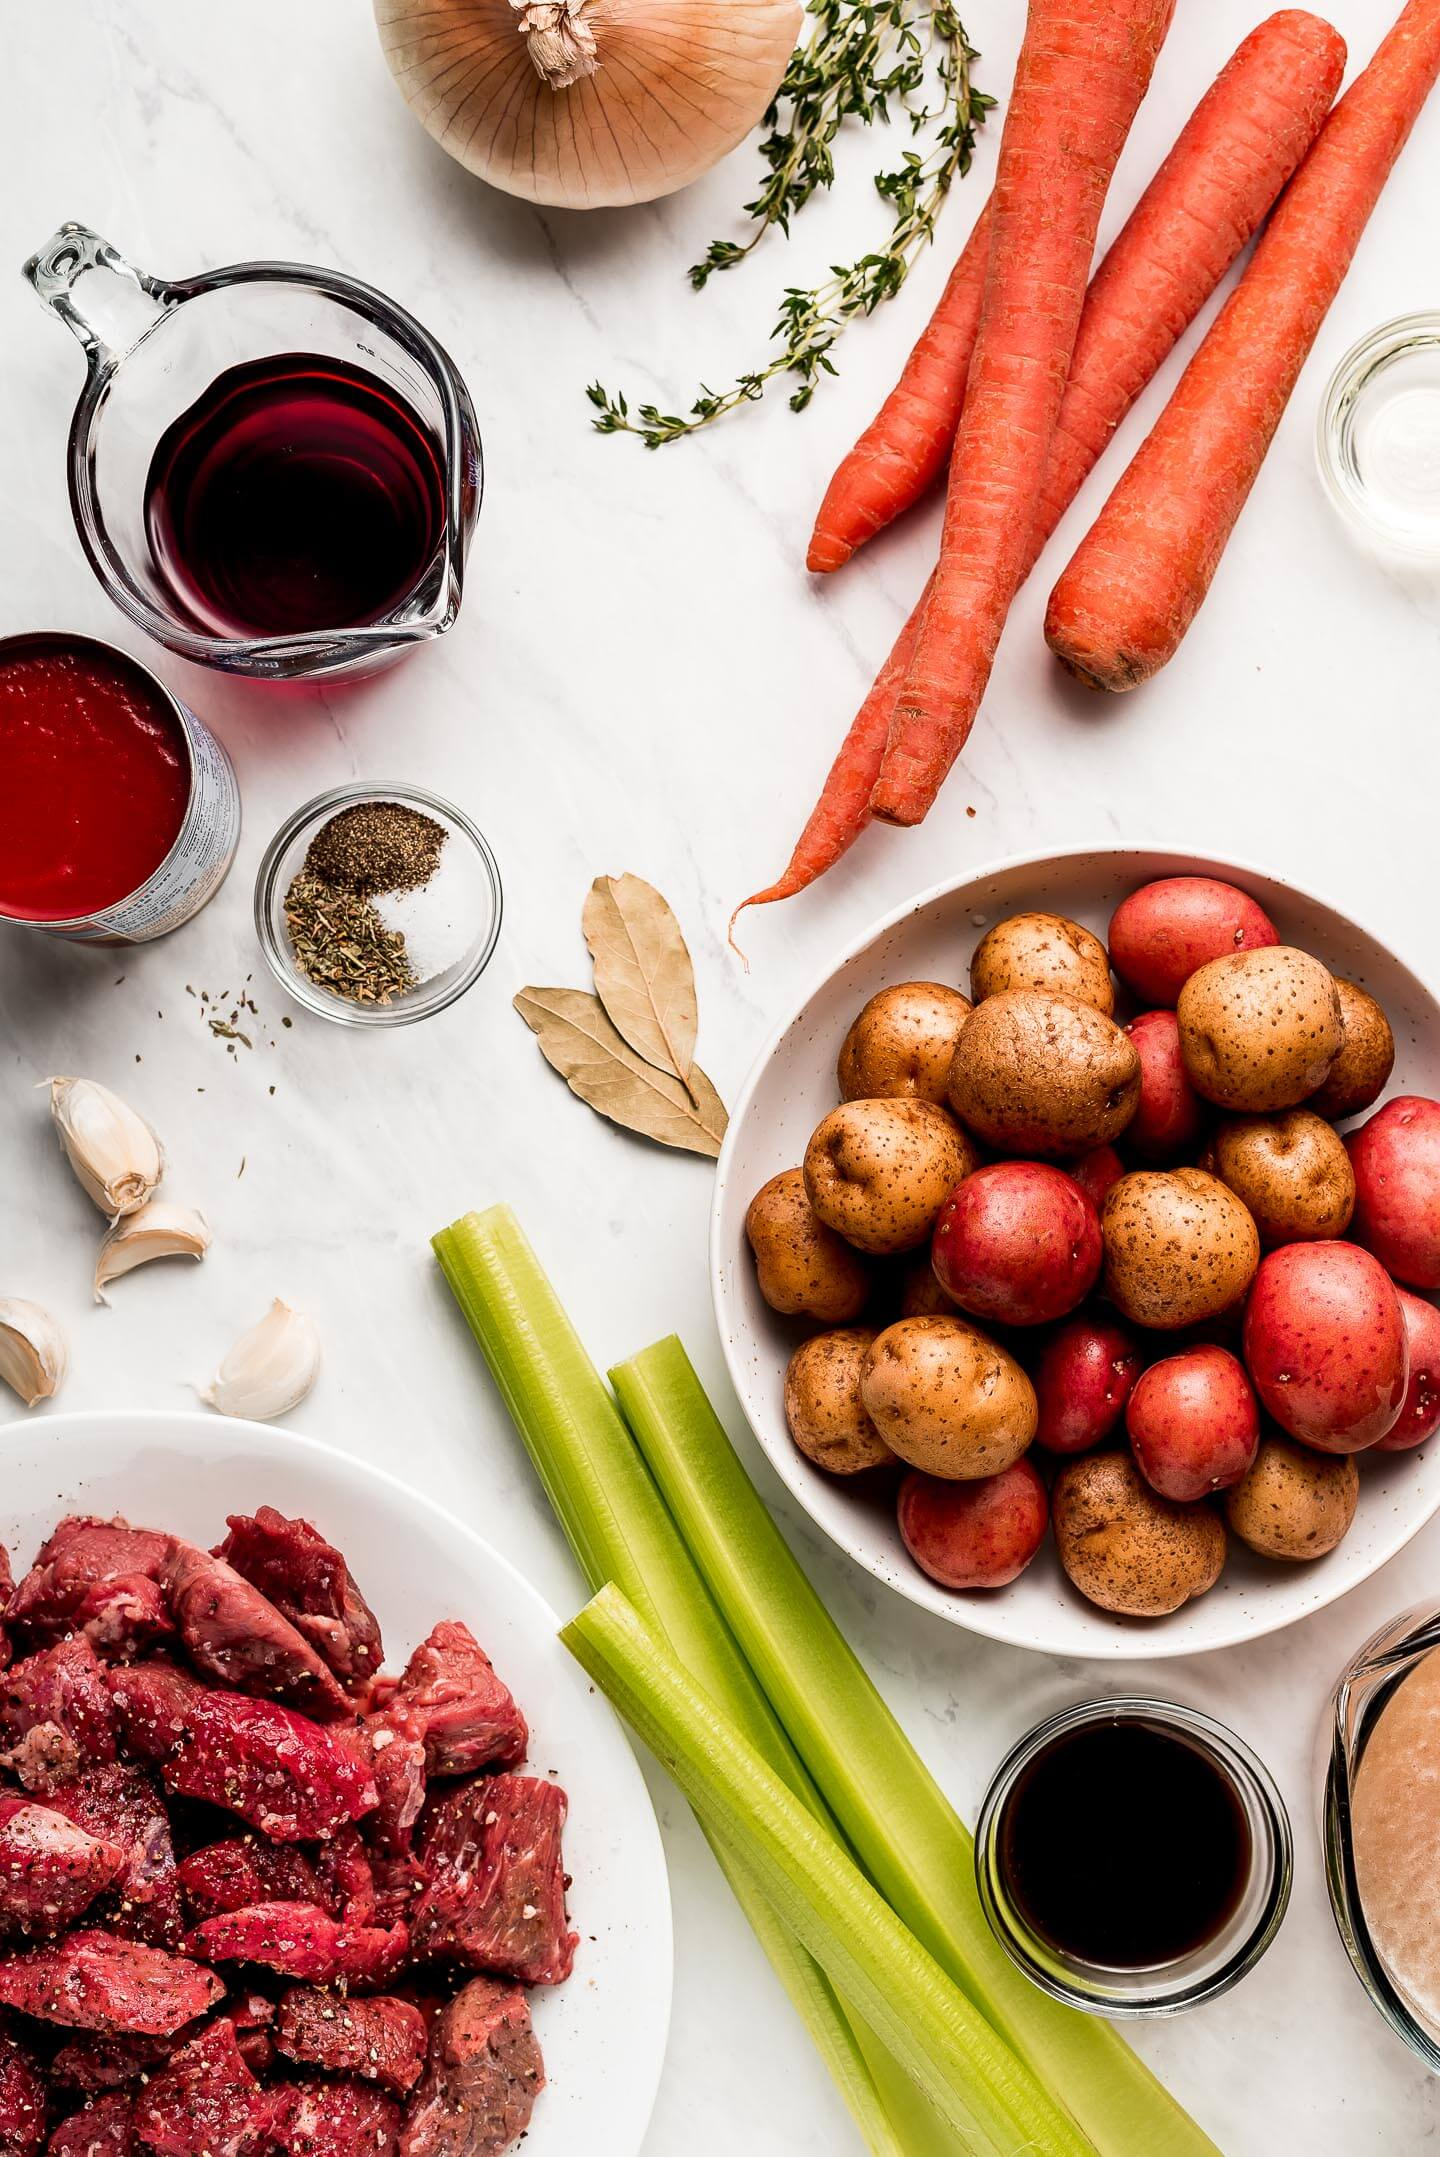 Ingredients on a marble surface- little potatoes, beef, celery, carrots, wine, onion, thyme, tomato sauce, garlic, and spices.